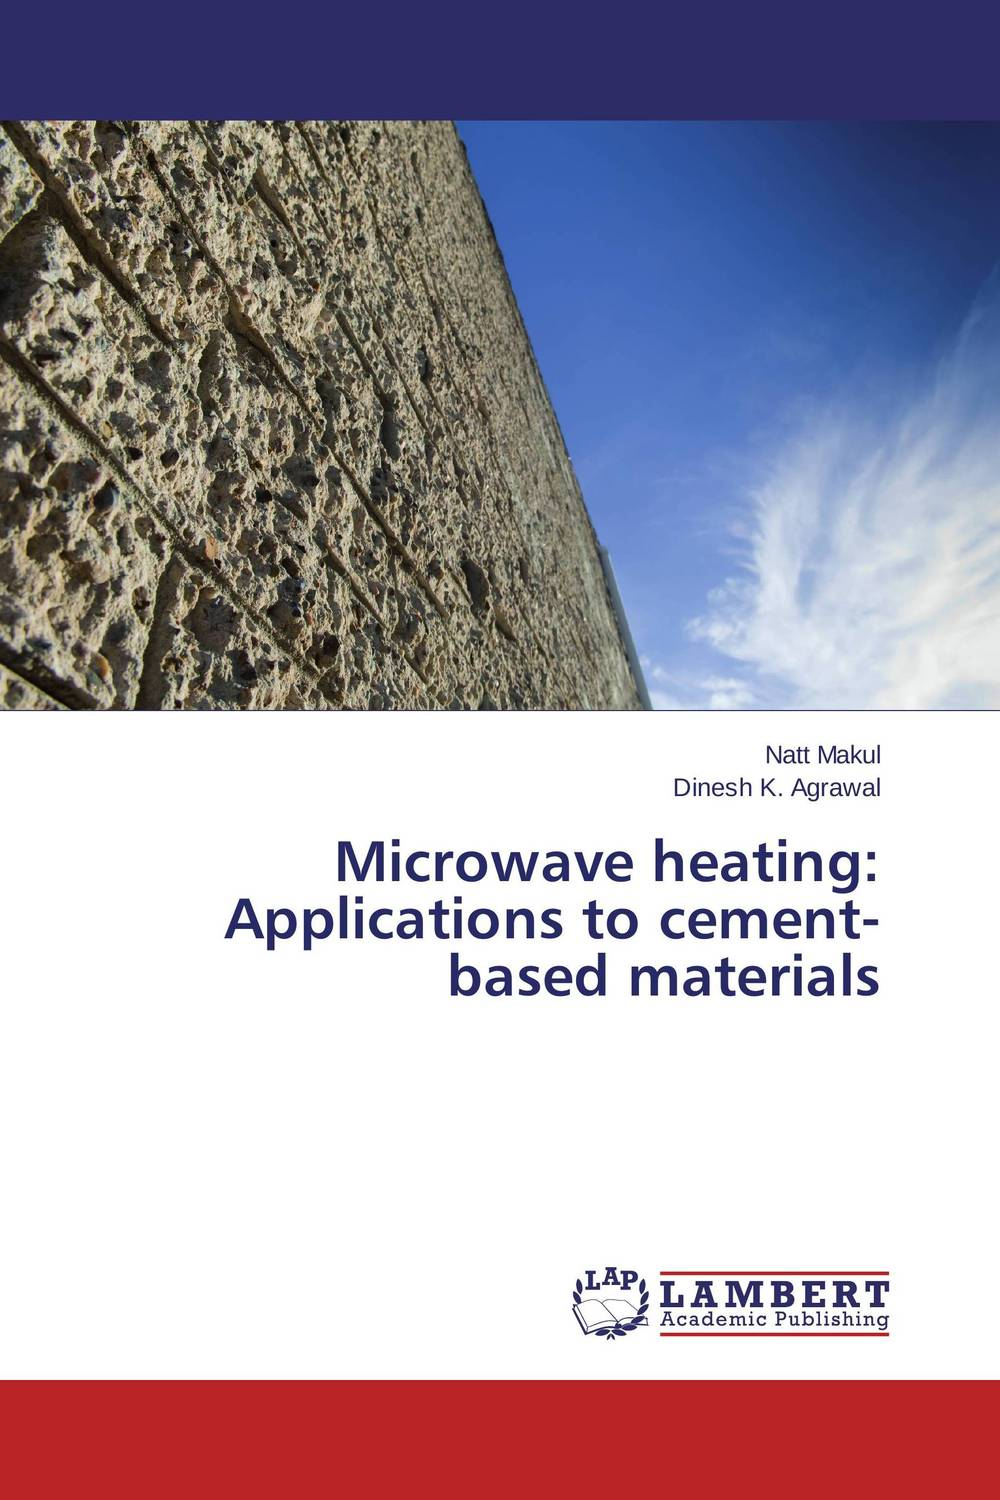 Microwave heating: Applications to cement-based materials husk